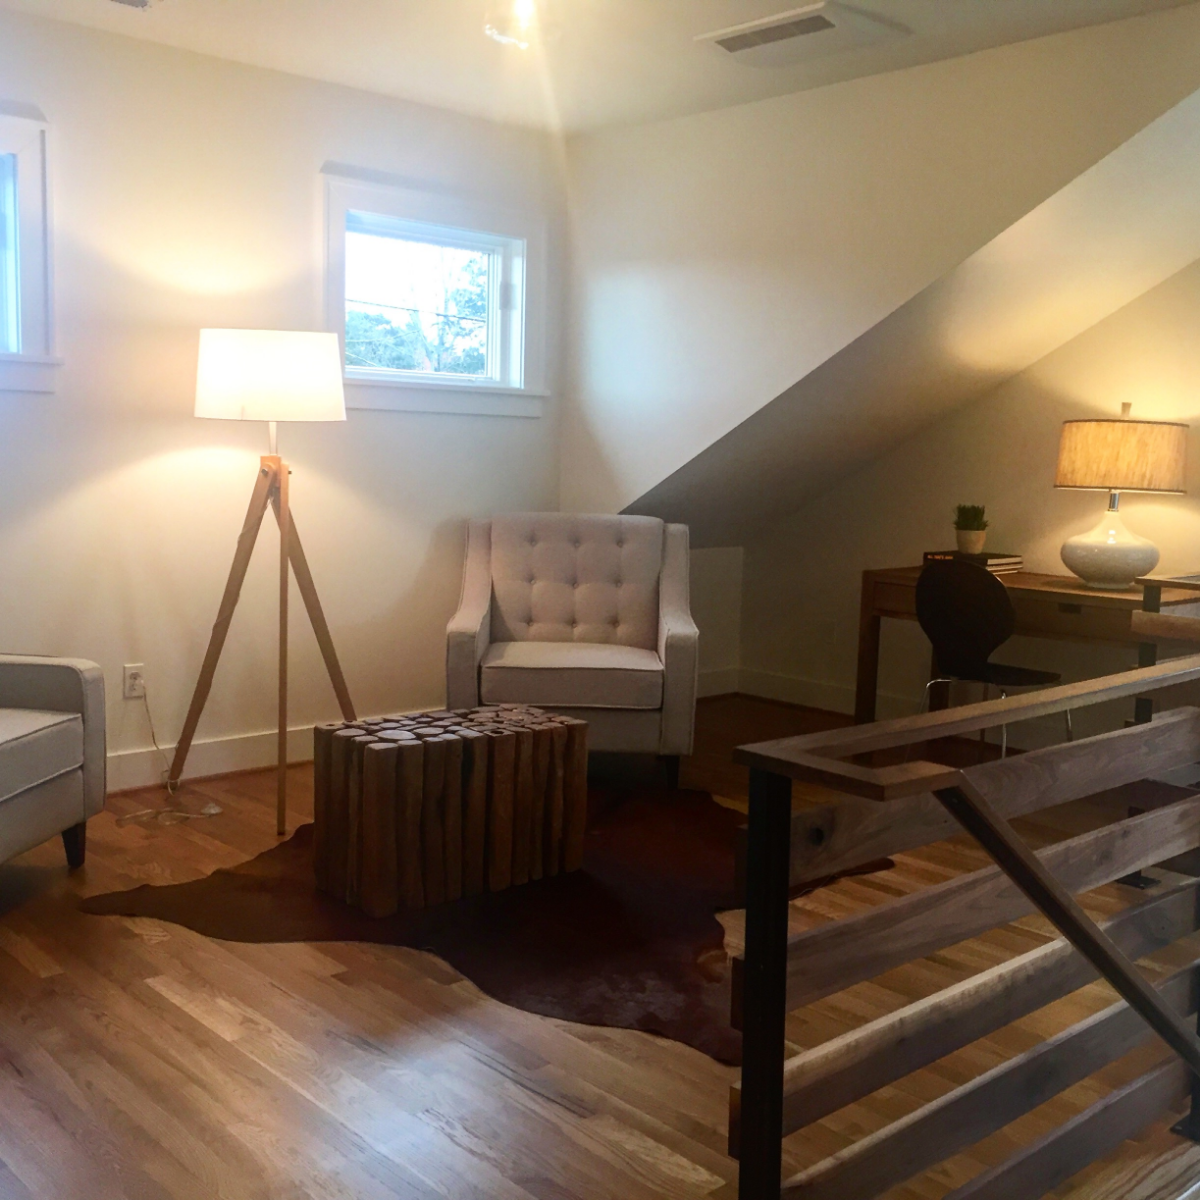 A gorgeous sitting room tucked away at the top of the stairs. This was in a brand new home in NE Portland that was done perfectly- it had all of the modern touches and high-end finishes of a brand new home but blended seamlessly with the older homes on the street, retaining the character and charm of the neighborhood.